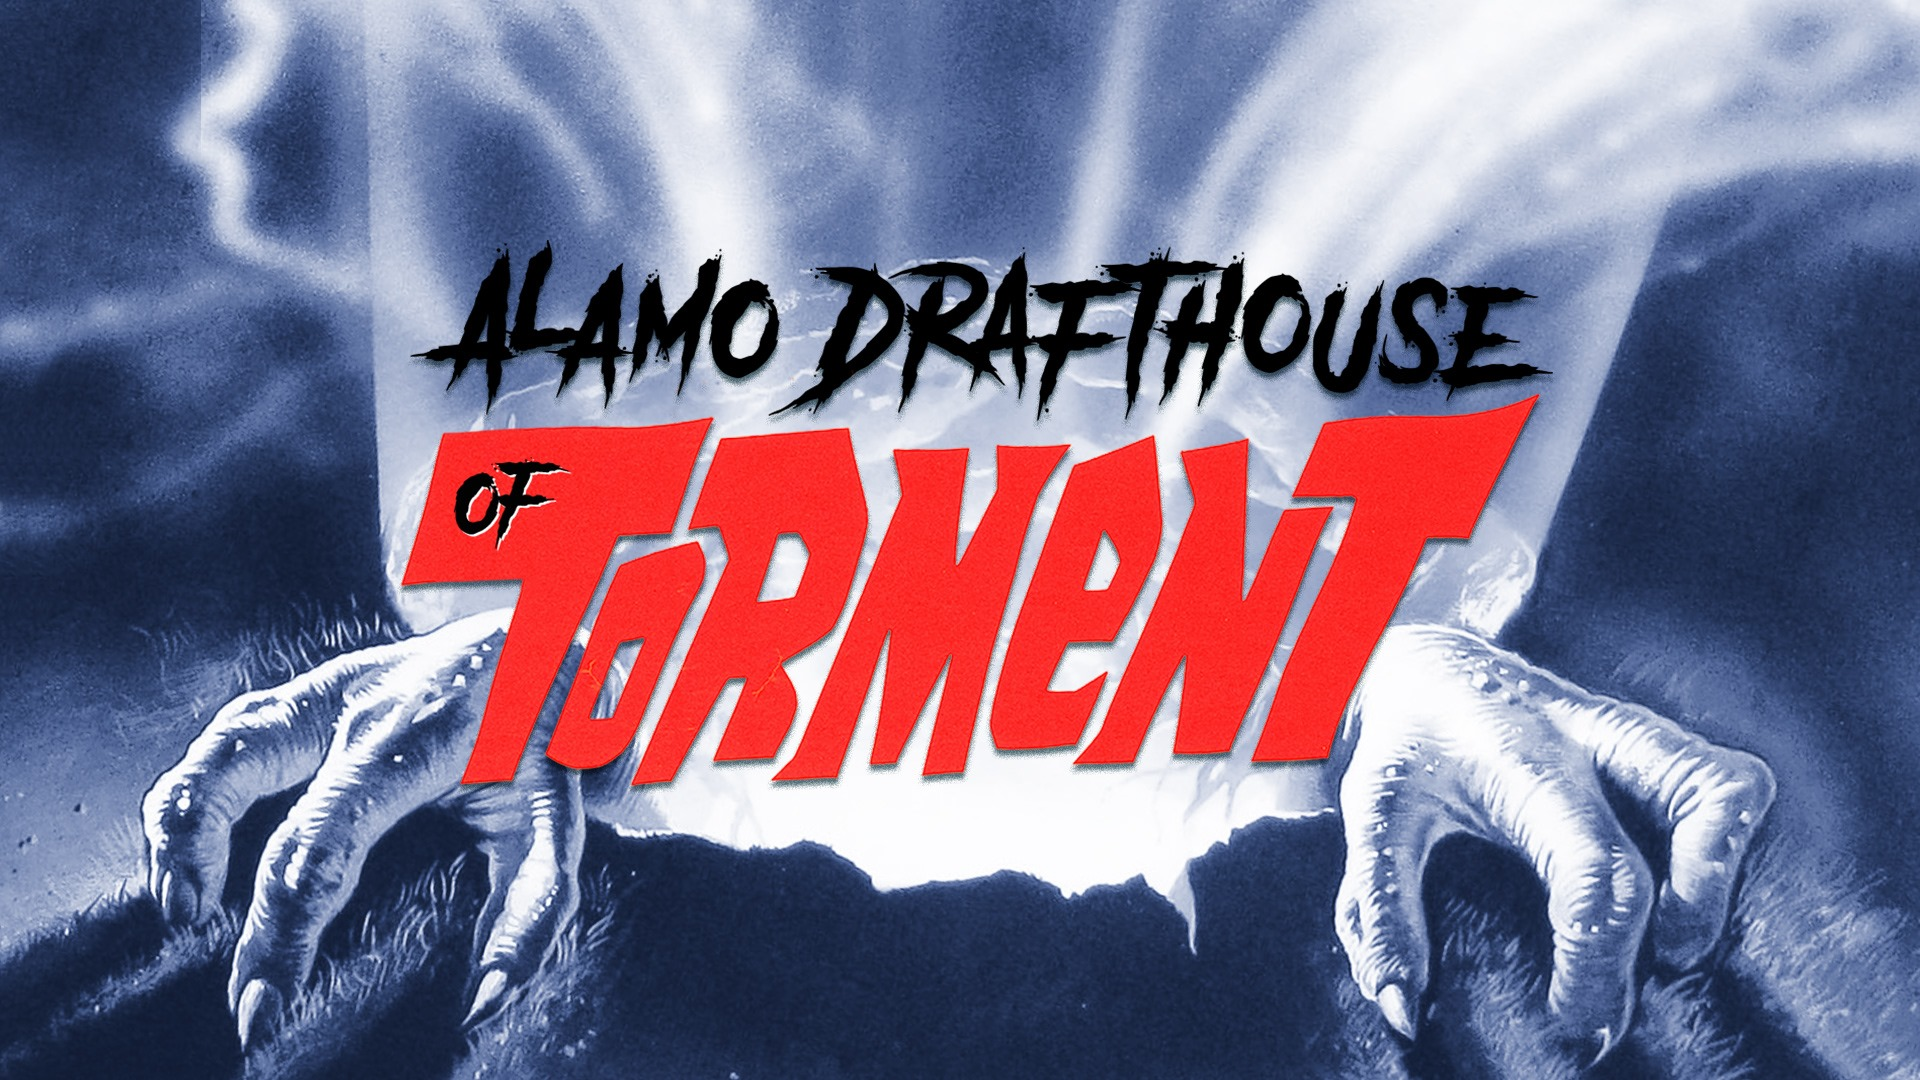 Alamo Drafthouse of Torment